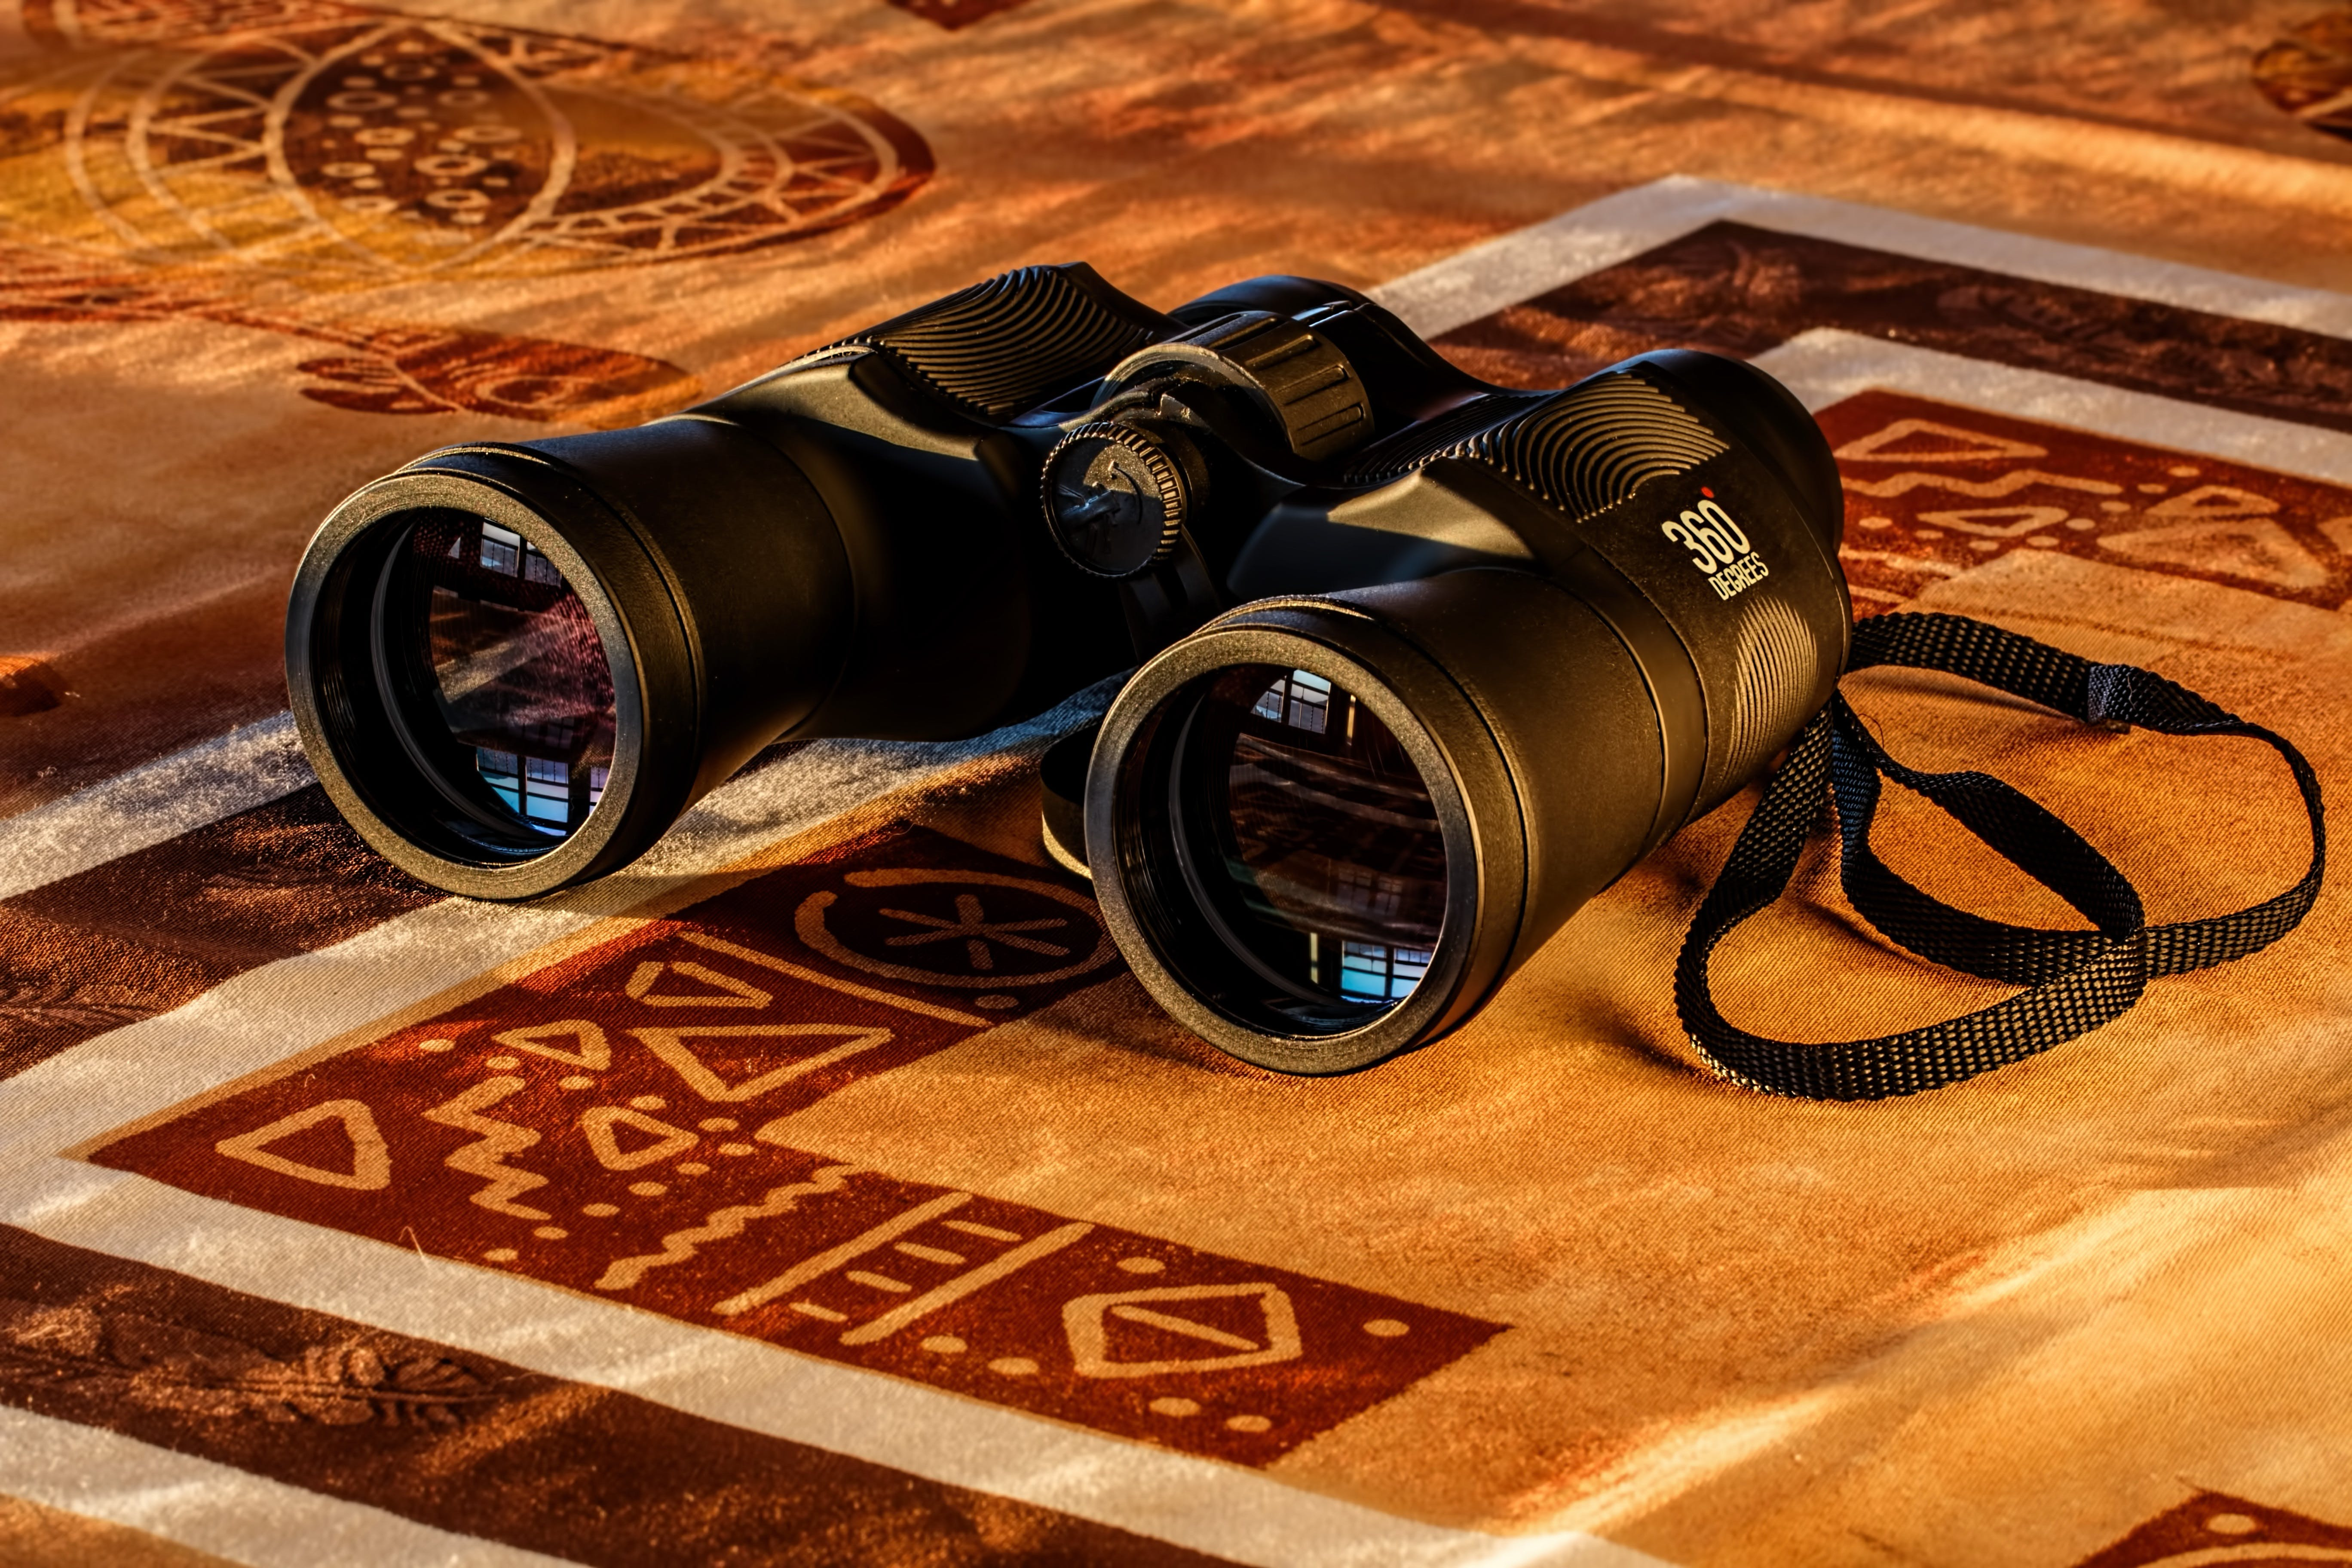 Black Binoculars in Maroon and Beige Textile